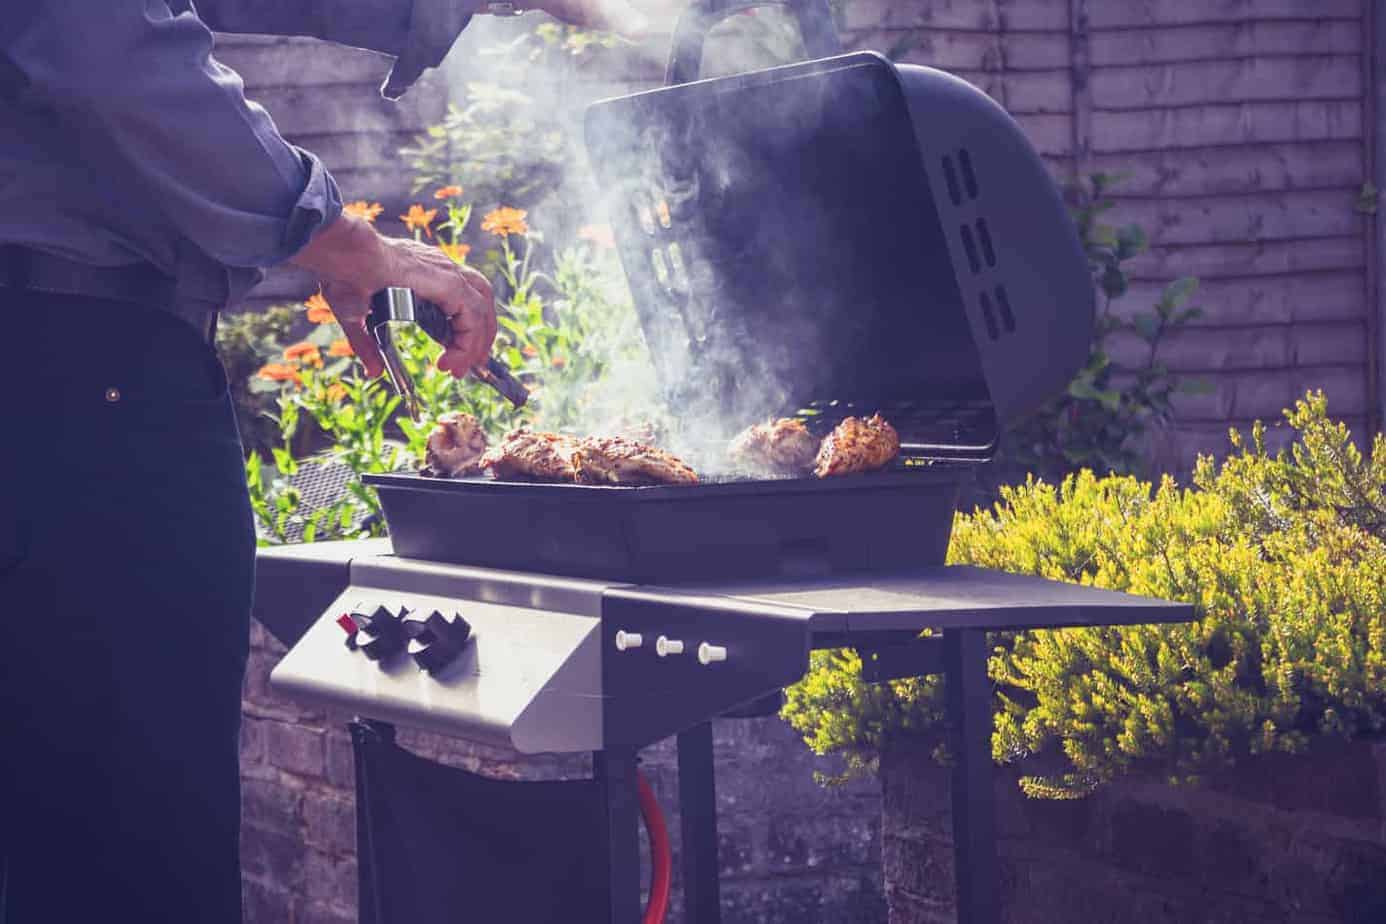 Bbq On Gas Grill